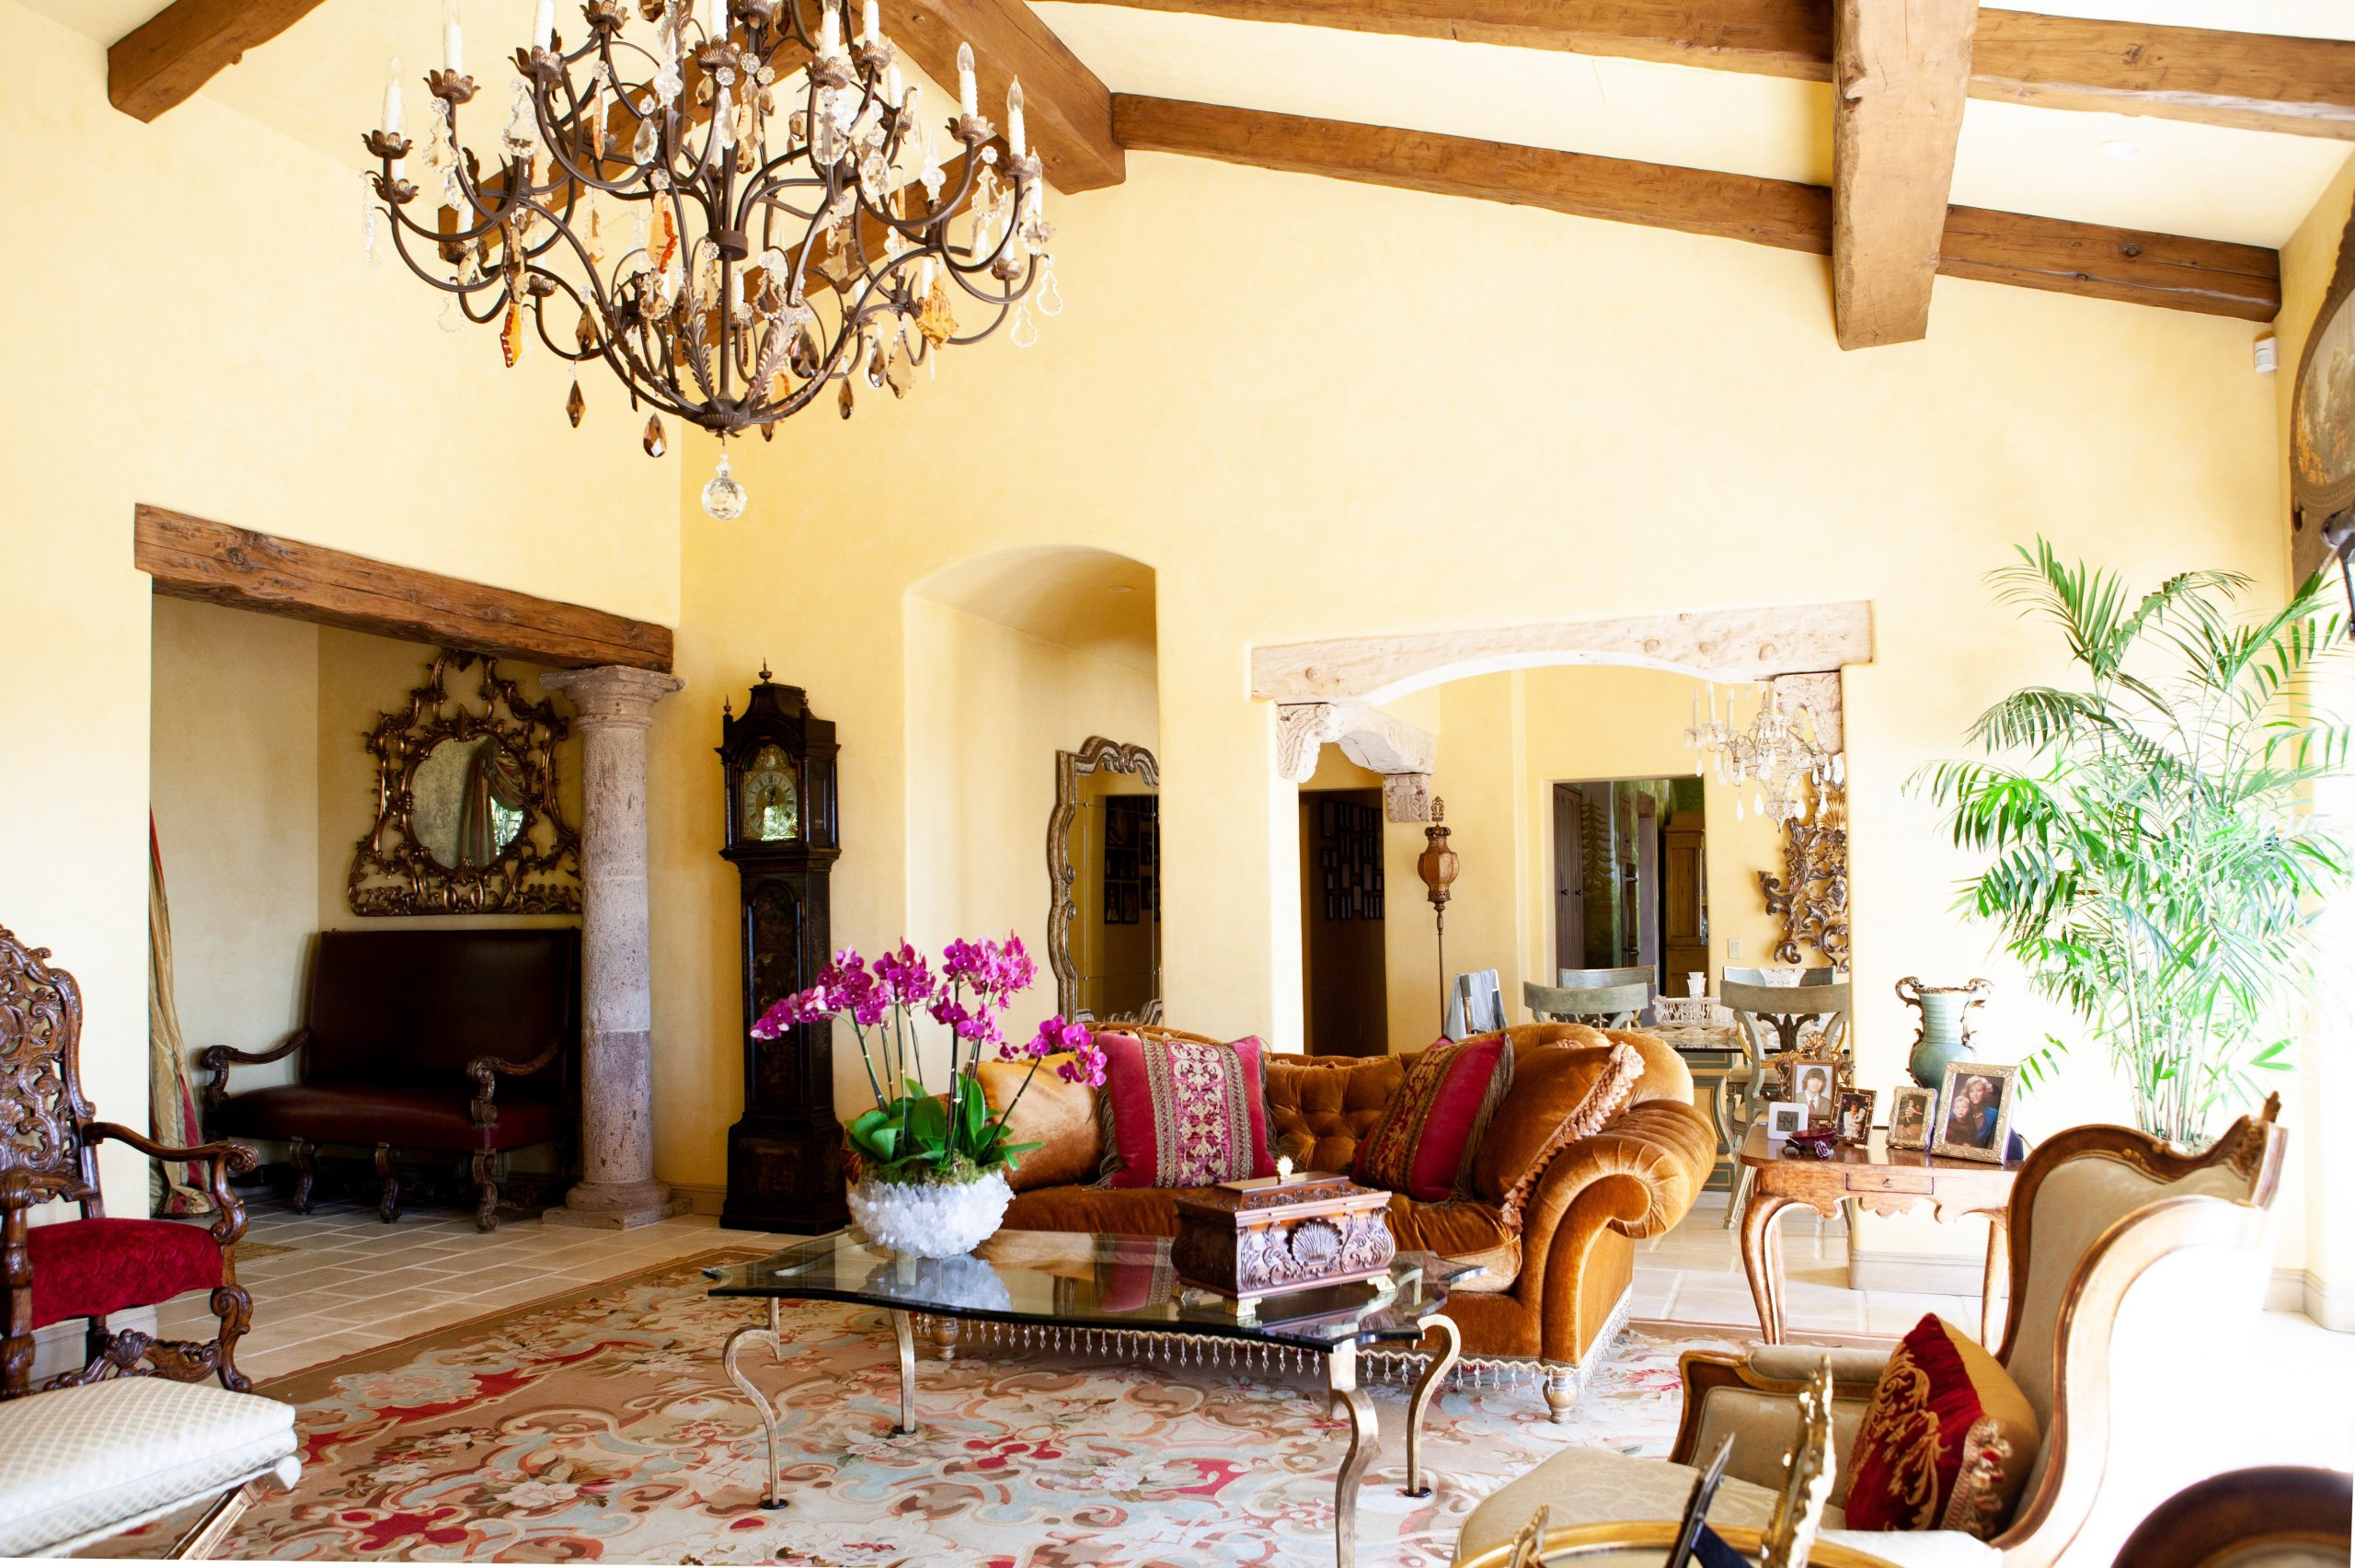 To visually repreent a residential interior painting job done by eduardo vicente painting in montecito